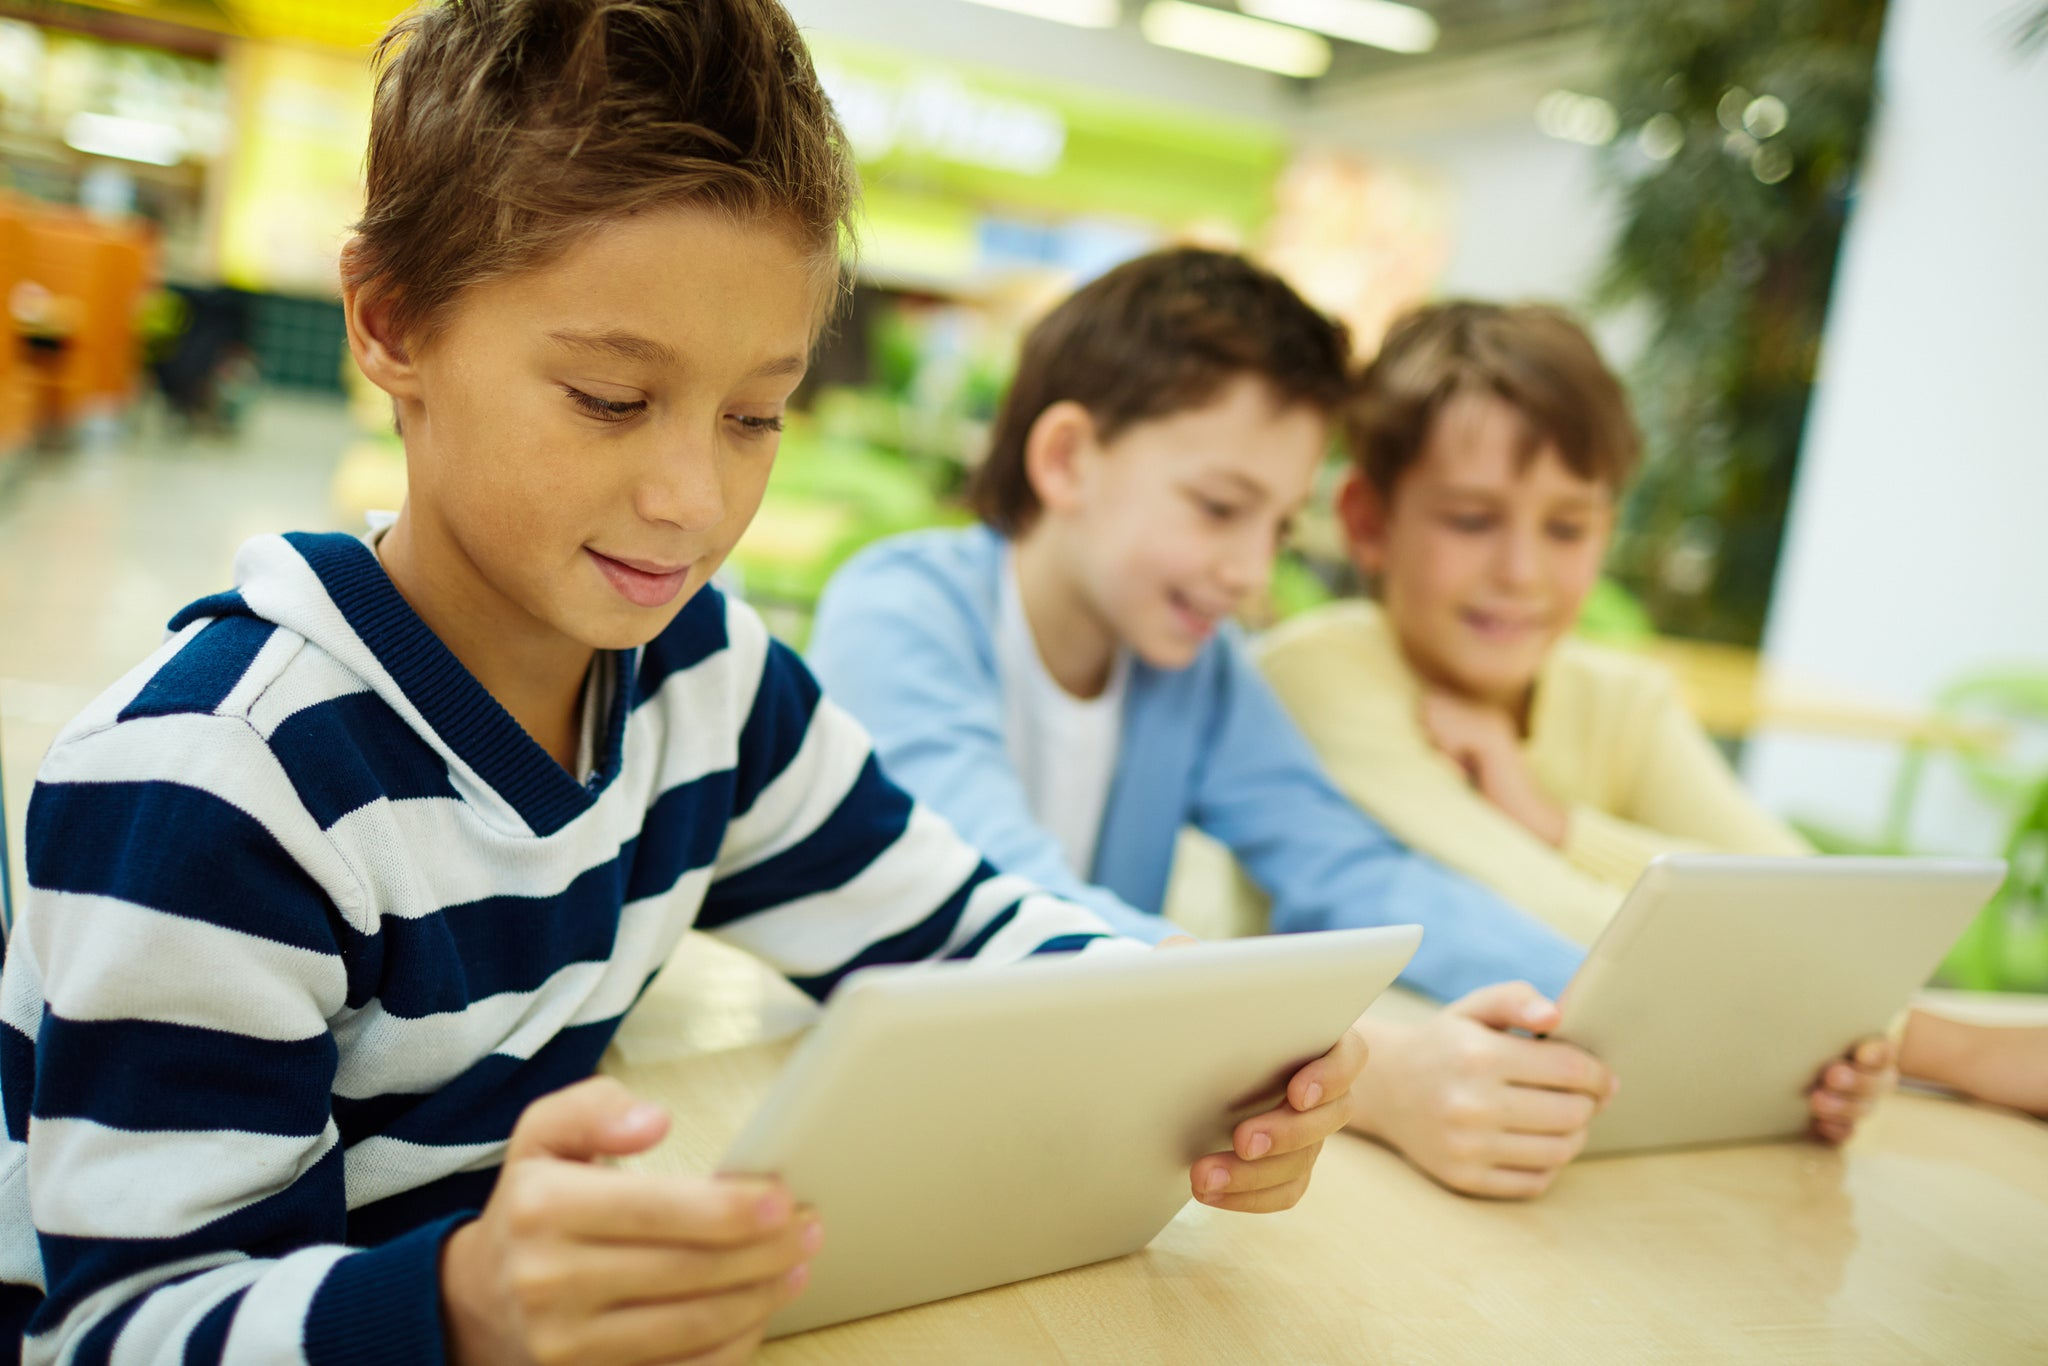 Ten Ways by which Technology  Positively and Negatively Affects Children